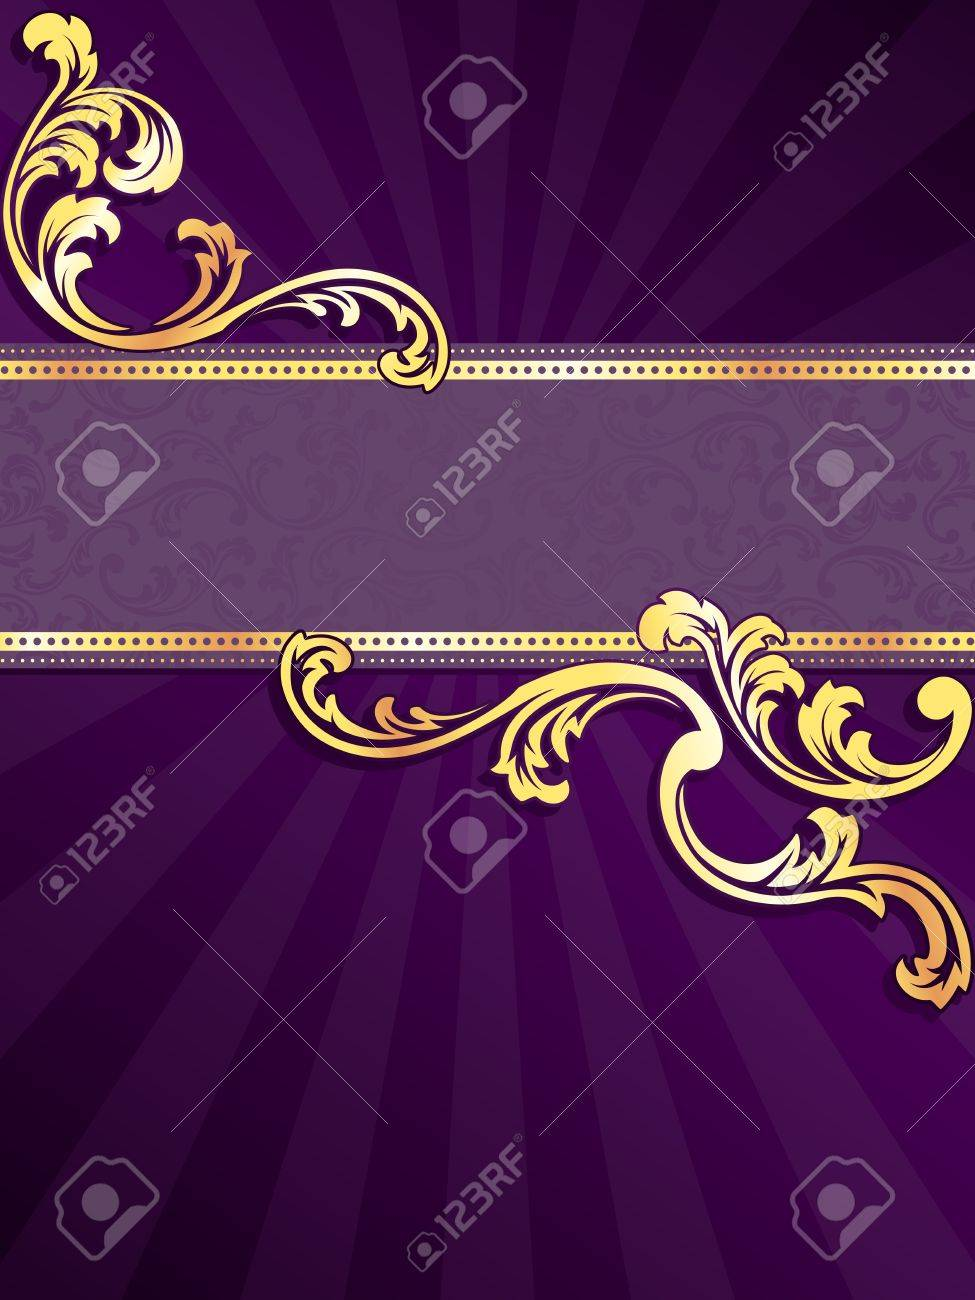 stylish vertical purple banner with metallic swirls. Graphics are grouped and in several layers for easy editing. The file can be scaled to any size. Stock Vector - 6827343